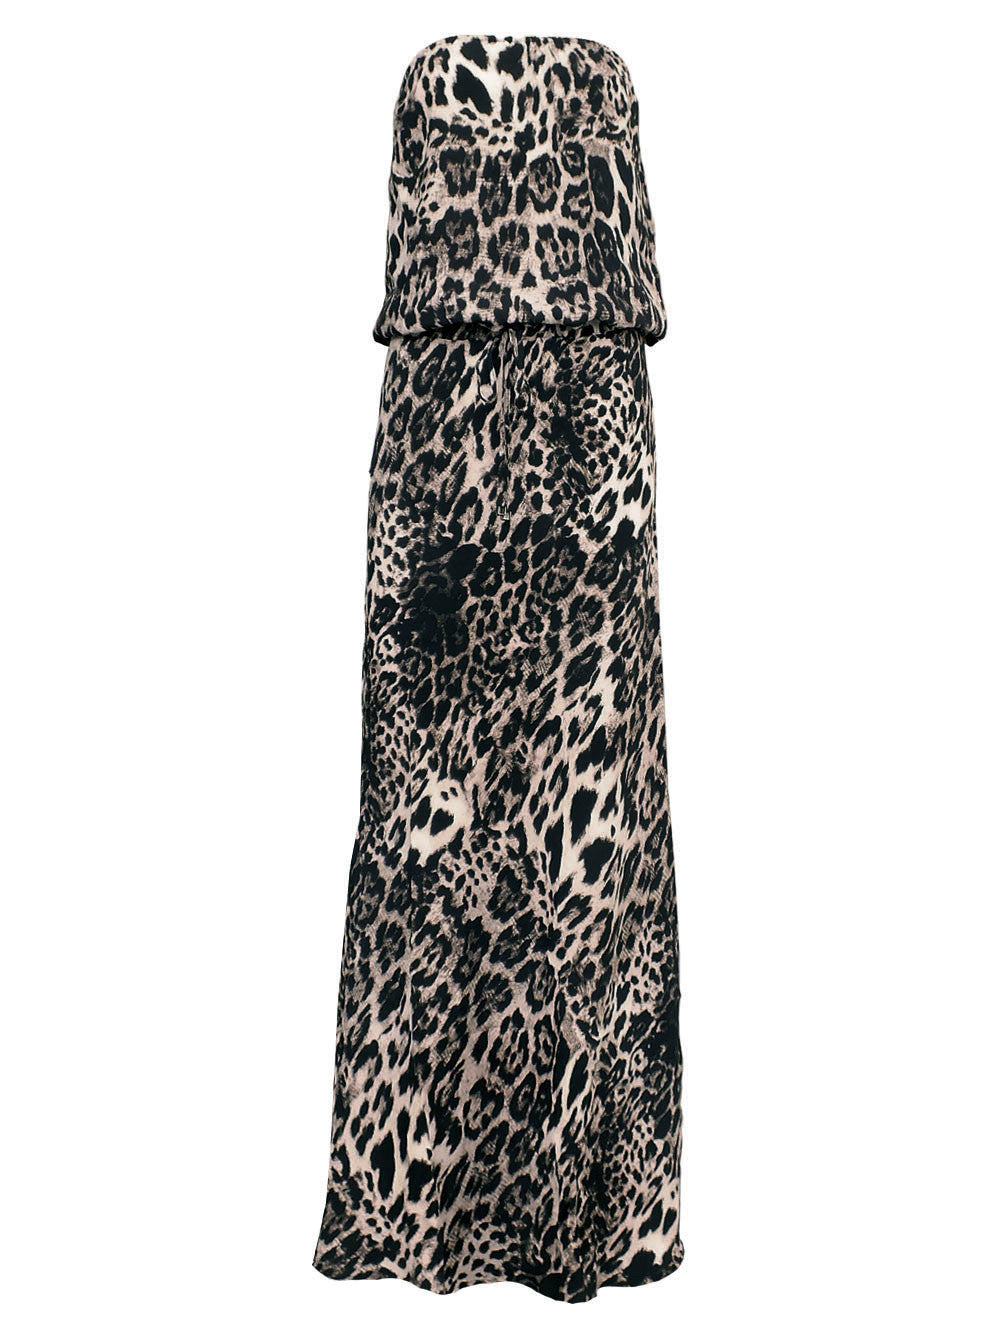 I'M A STAR LEOPARD PRINT DRESS - Little Joe Woman by Gail Elliott E-Boutique  - 1